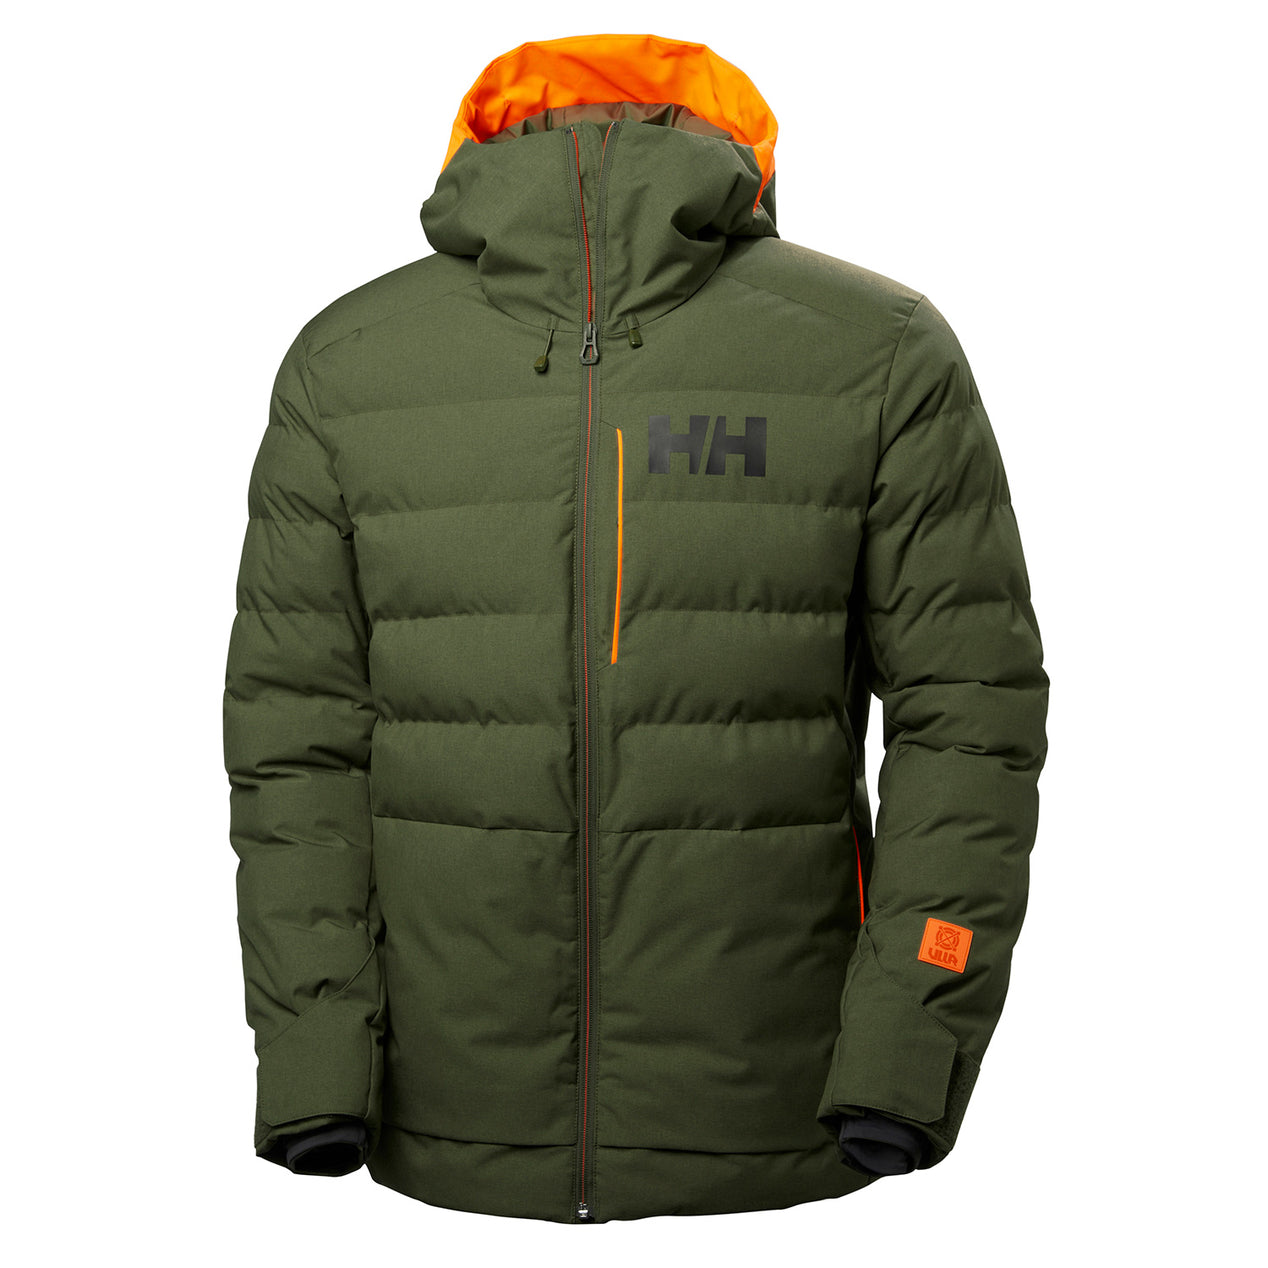 0f6a1510cc98c Helly Hansen Manteau Isolé Pointnorth Homme   Altitude Sports